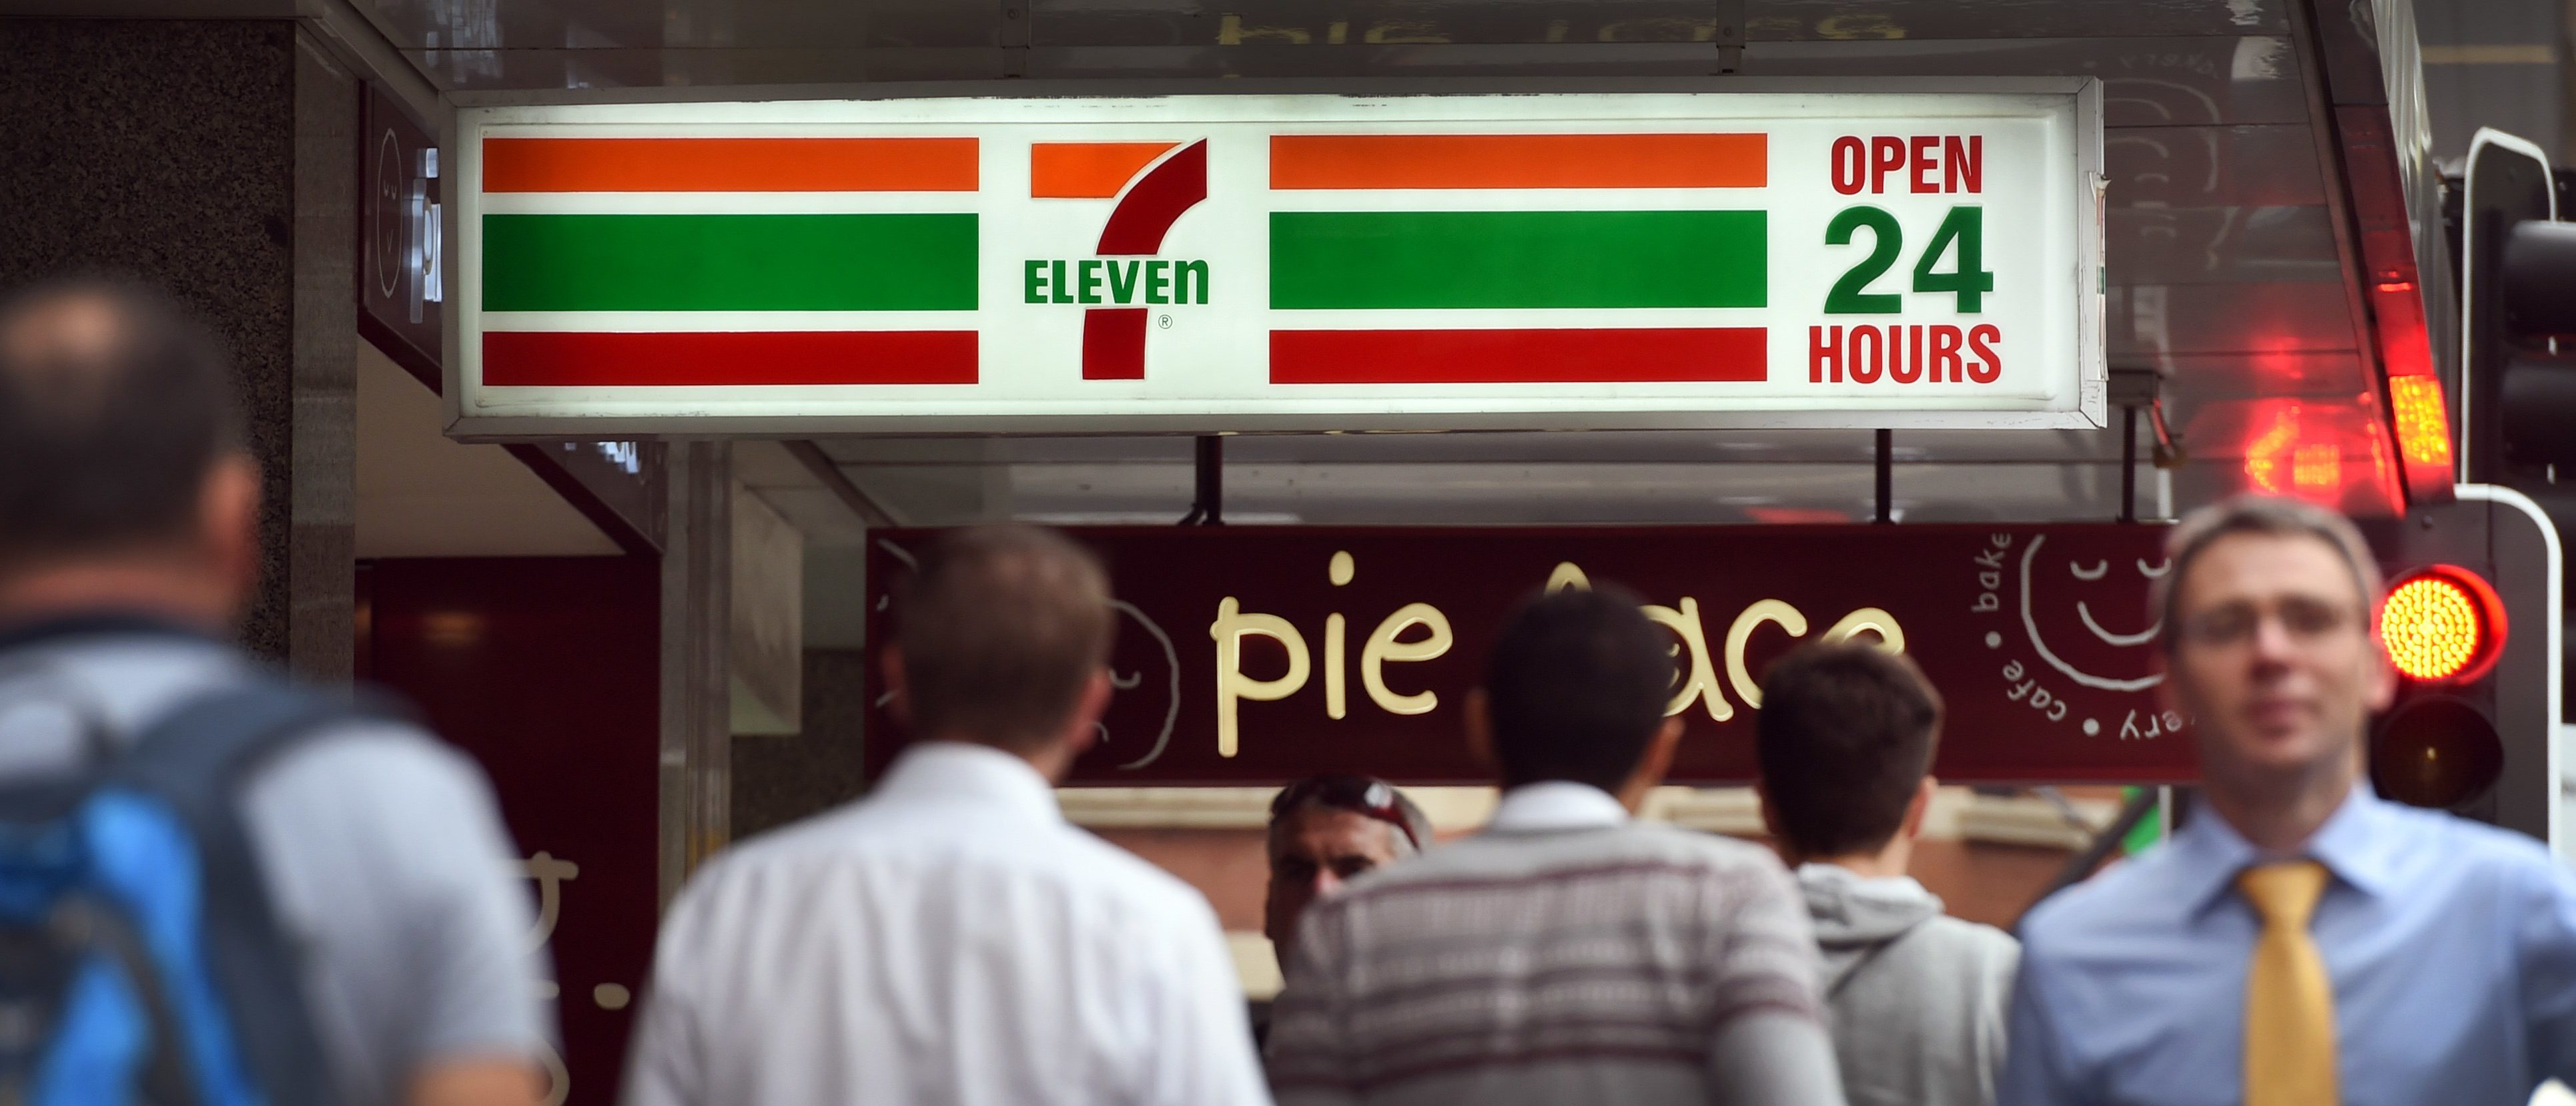 People walk past a 7-Eleven convenience store in Sydney's central business district on September 30, 2015.The chairman and chief executive of 7-Eleven convenience stores in Australia resigned on September 30, following allegations that franchises systematically underpaid workers. WILLIAM WEST/AFP/Getty Images